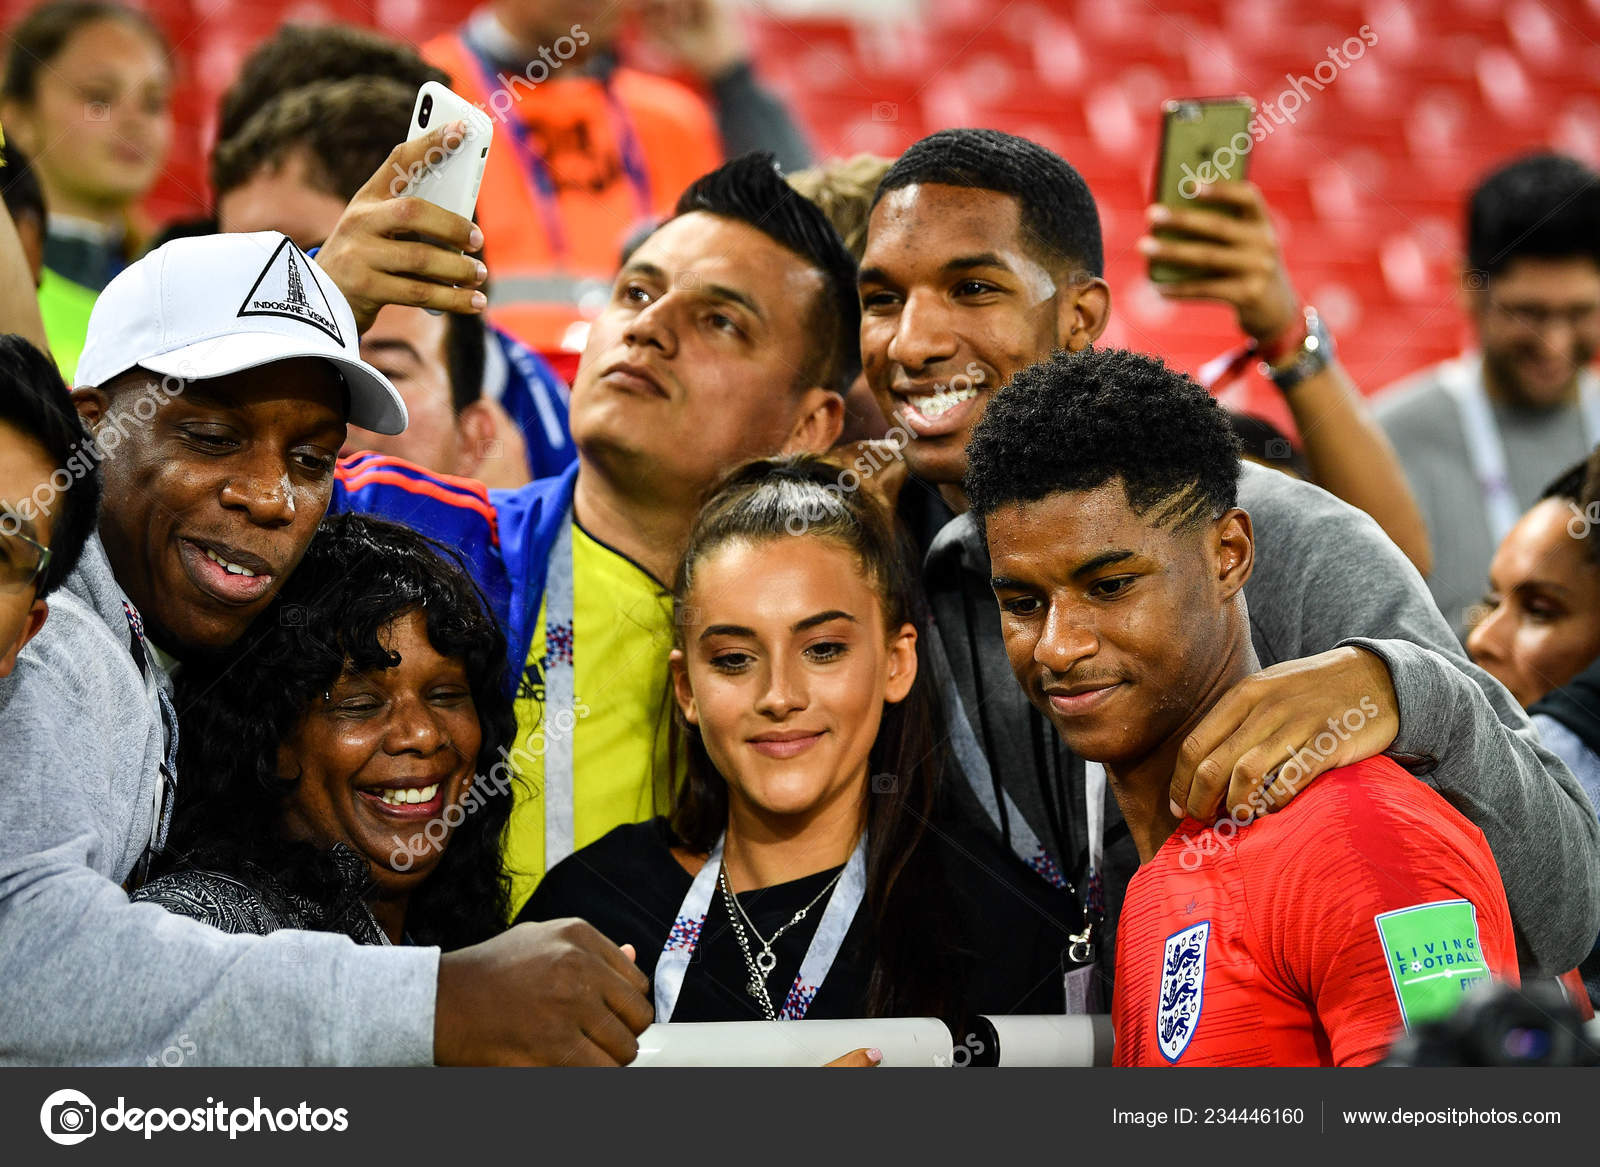 Marcus Rashford England Celebrates His Families Friends Defeating Columbia Match Stock Editorial Photo C Chinaimages 234446160